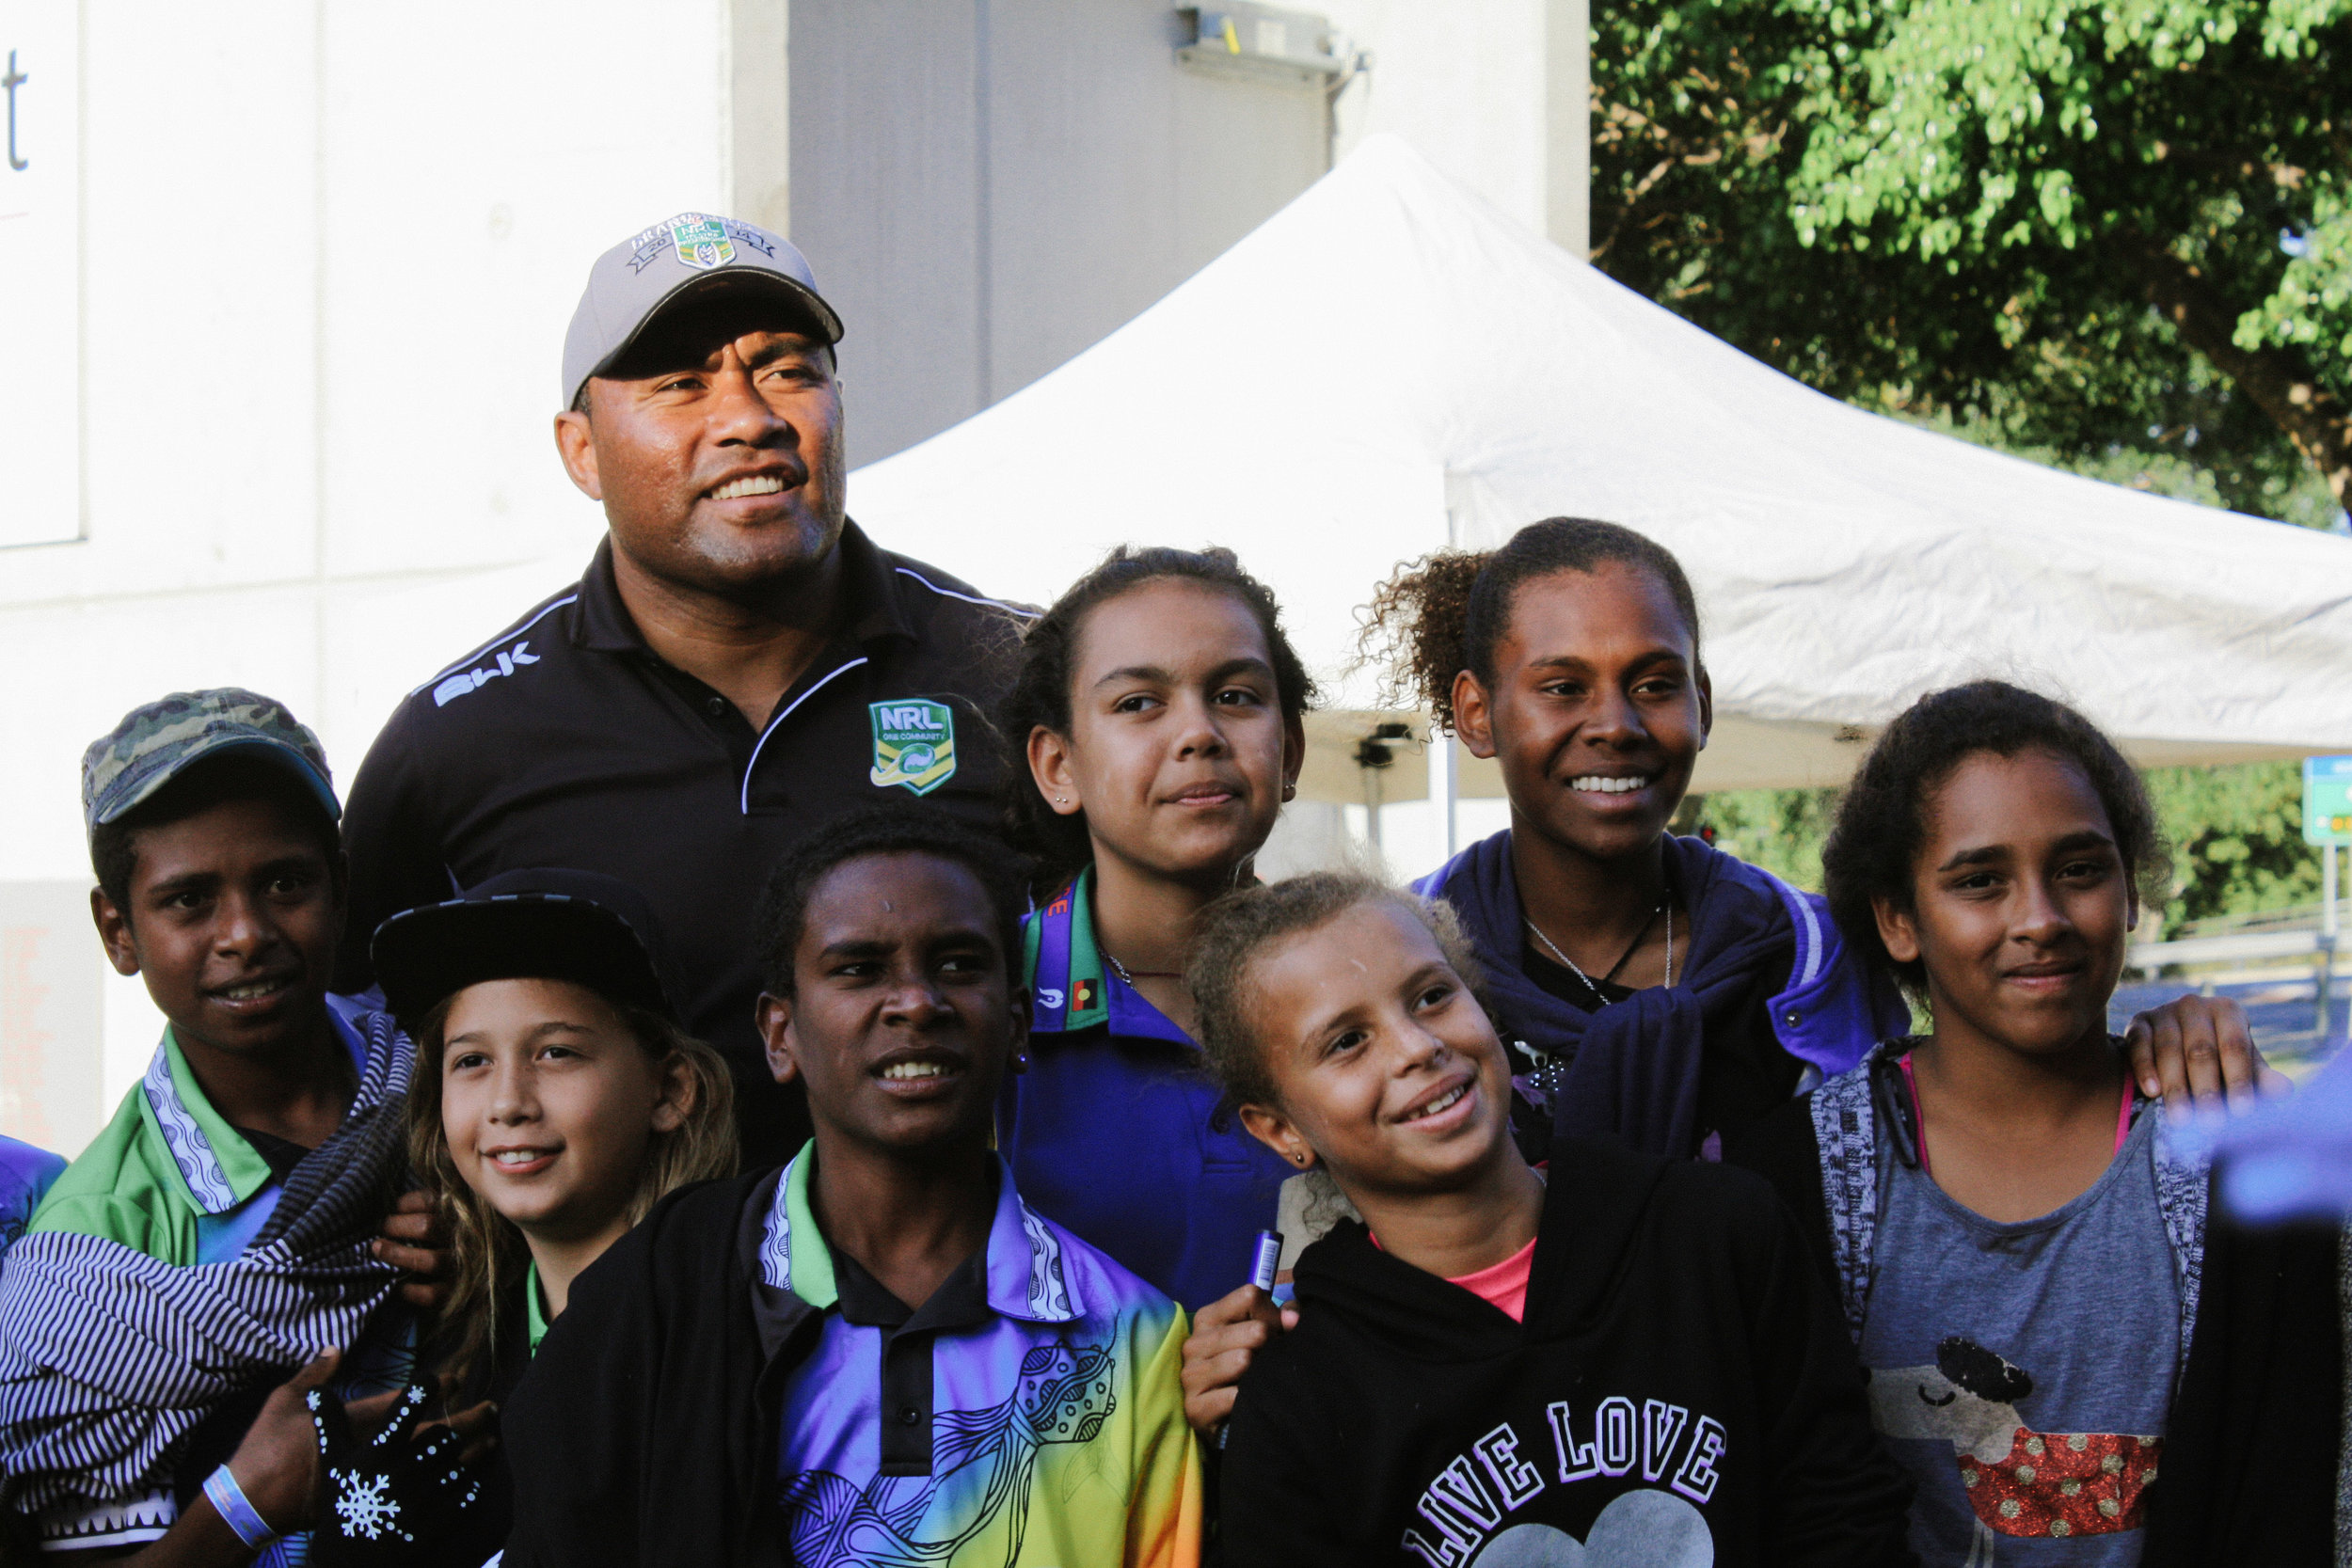 Lesly Lotha_Newzulu Australia_Four Nations_Brisbane_2014 - 07